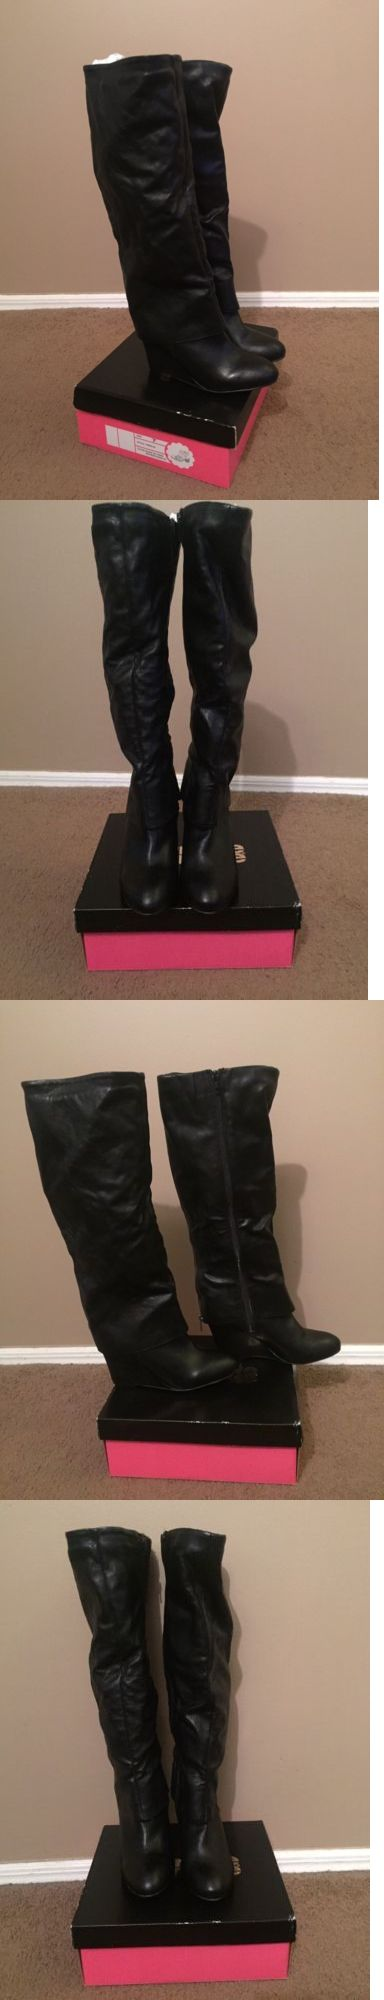 Women Boots: Brand New Womens Ladies Winter Boots Wedge Knee High Upper Leather Black Sz 7-8 -> BUY IT NOW ONLY: $74.99 on eBay!